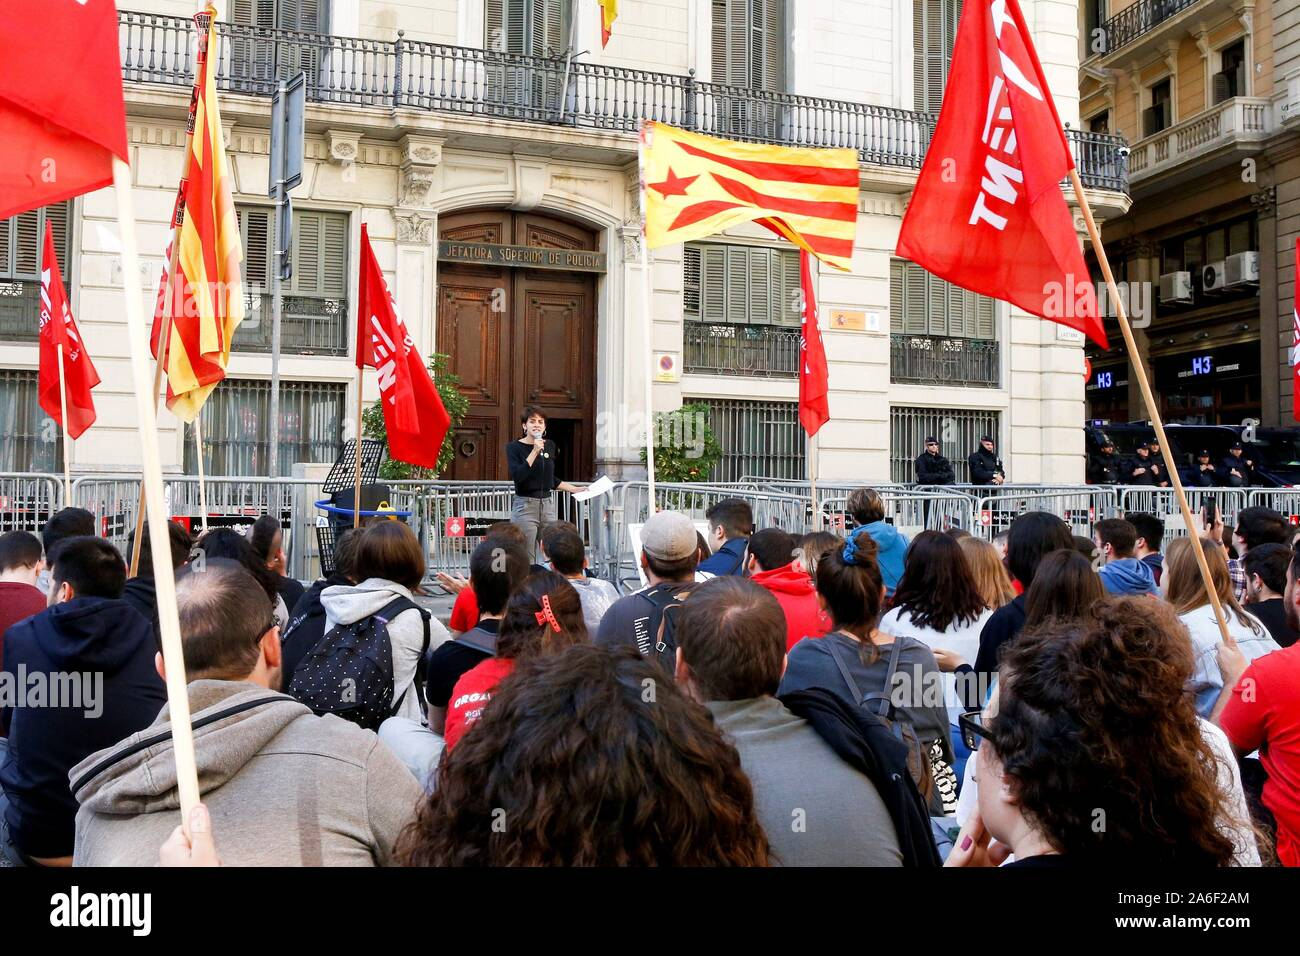 Barcelona, Spain. 26th Oct, 2019. Catalan pro-independent party ERC's Youth Movement activists protest outside Spanish National Police headquarters in Barcelona, Catalonia, northeastern Spain, 26 October 2019. Credit: Quique Garcia/EFE/Alamy Live News Stock Photo